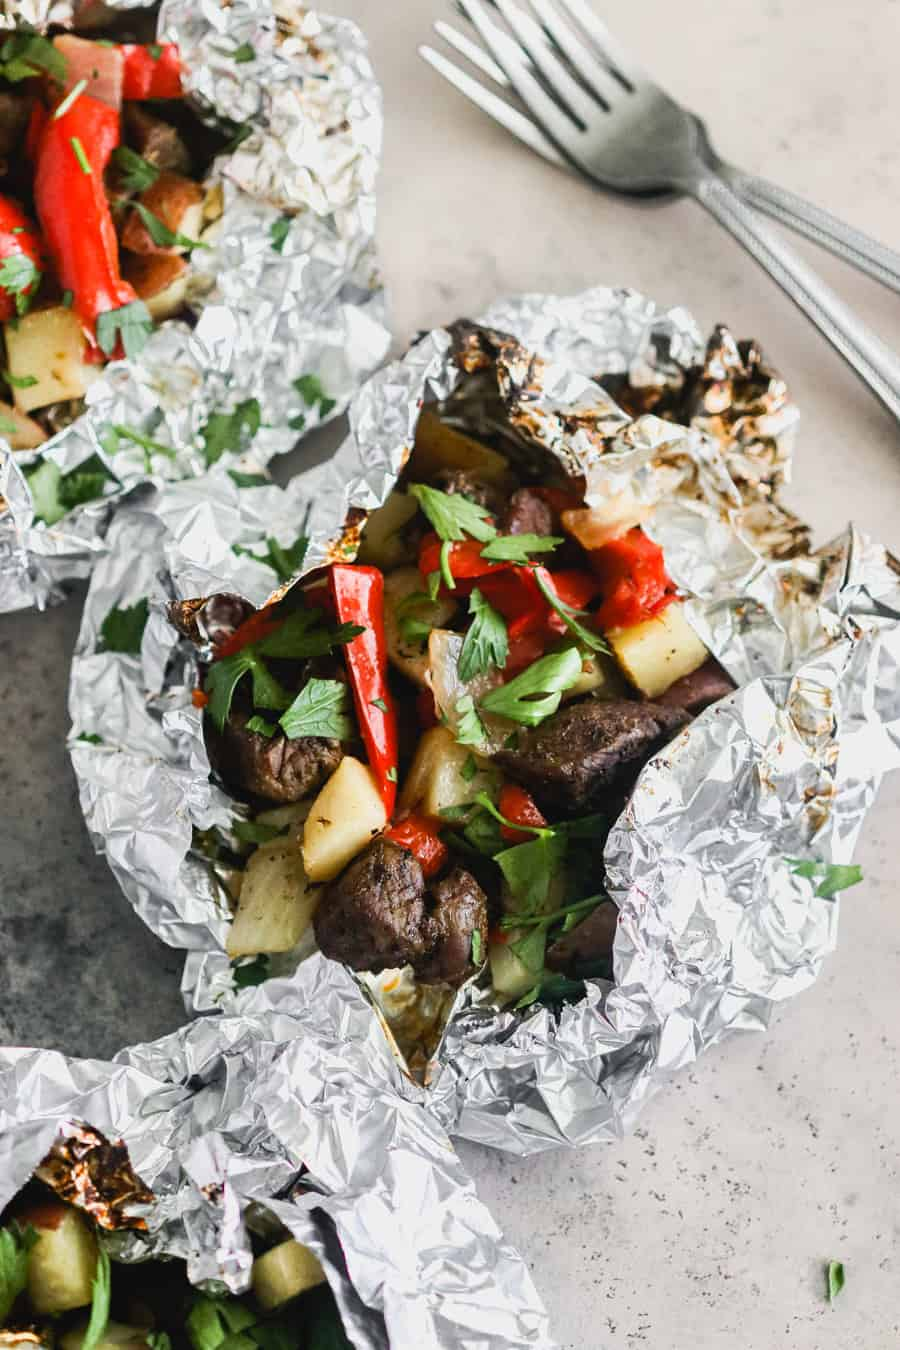 Steak and Pepper Foil packets on the grill